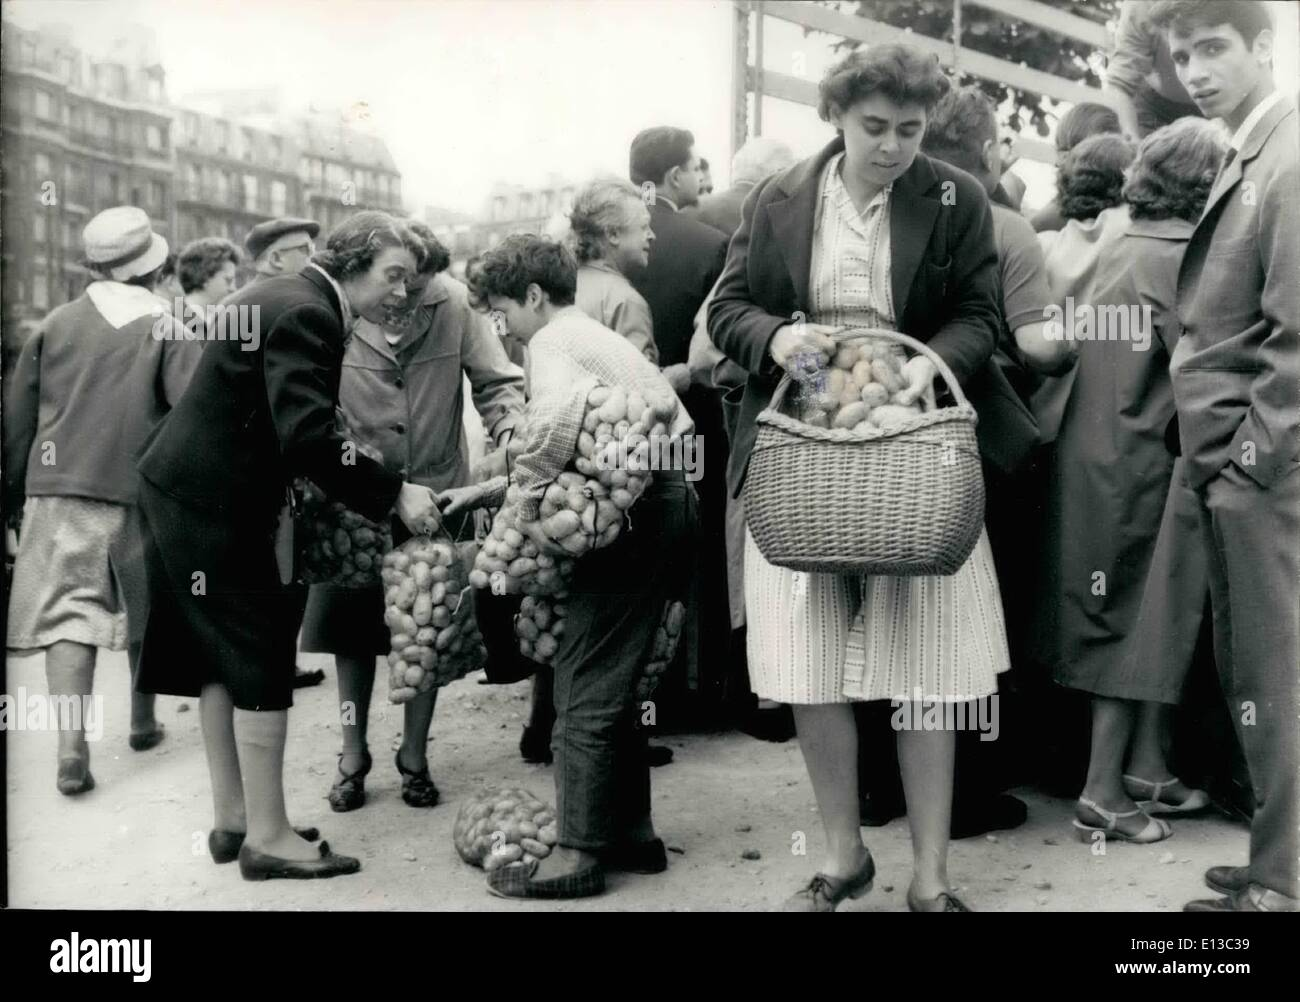 Feb. 29, 2012 - 1 Kilo of potatoes for only 20 centimes: producers from Finistere sent 50 tons of potatoes directly to the markets on Paris where they sold them for 20 centimes a kilo. photo shows Housewives with prepared 5 kilo parcels of potatoes for only 1 Franc. - Stock Image